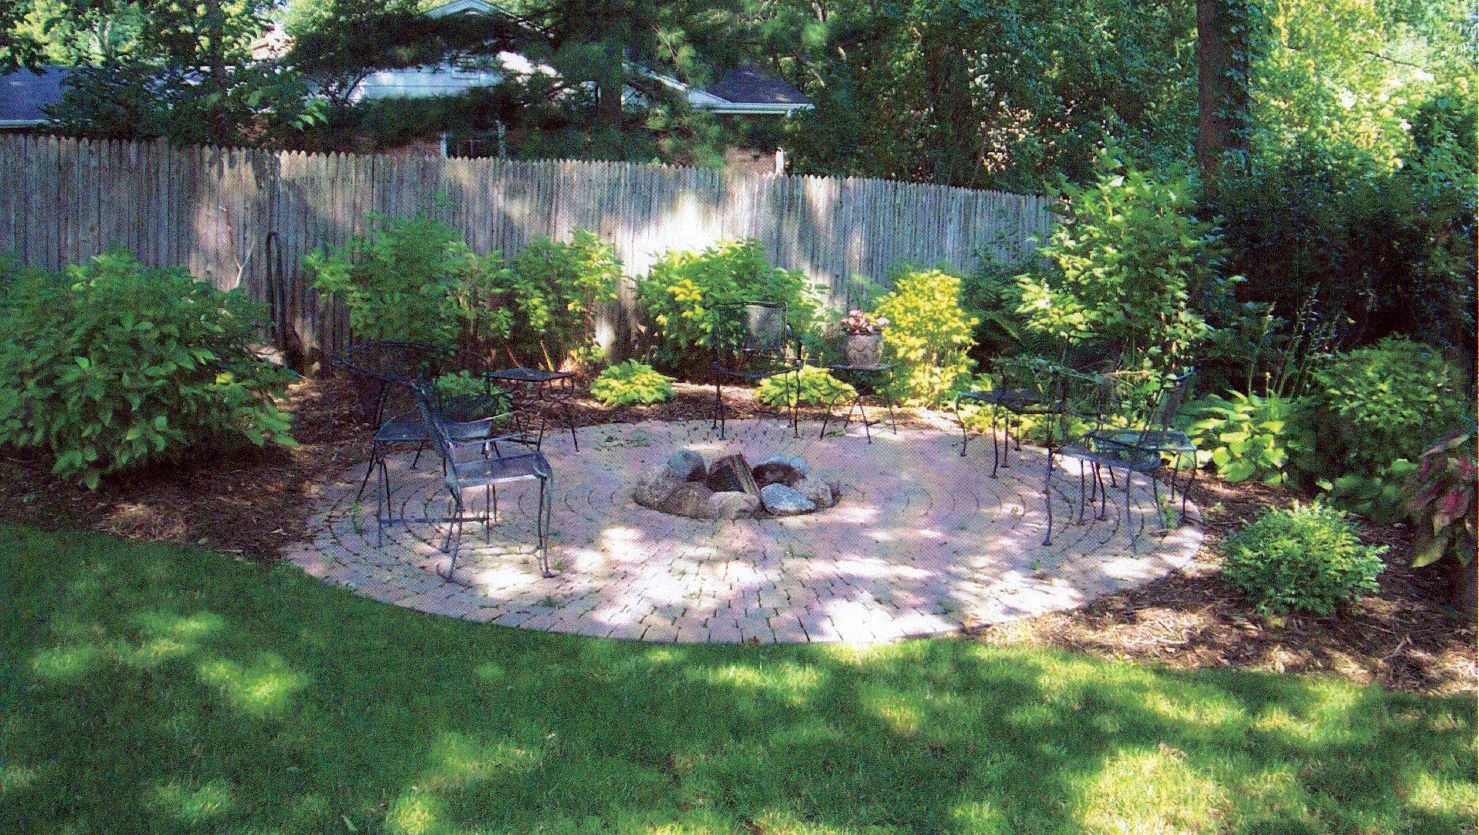 Backyard Landscape Design Ideas modern landscape design ideas remodels photos Landscaping Ideas For Small Backyard 23 Small Backyard Ideas How To Make Them Look Spacious And